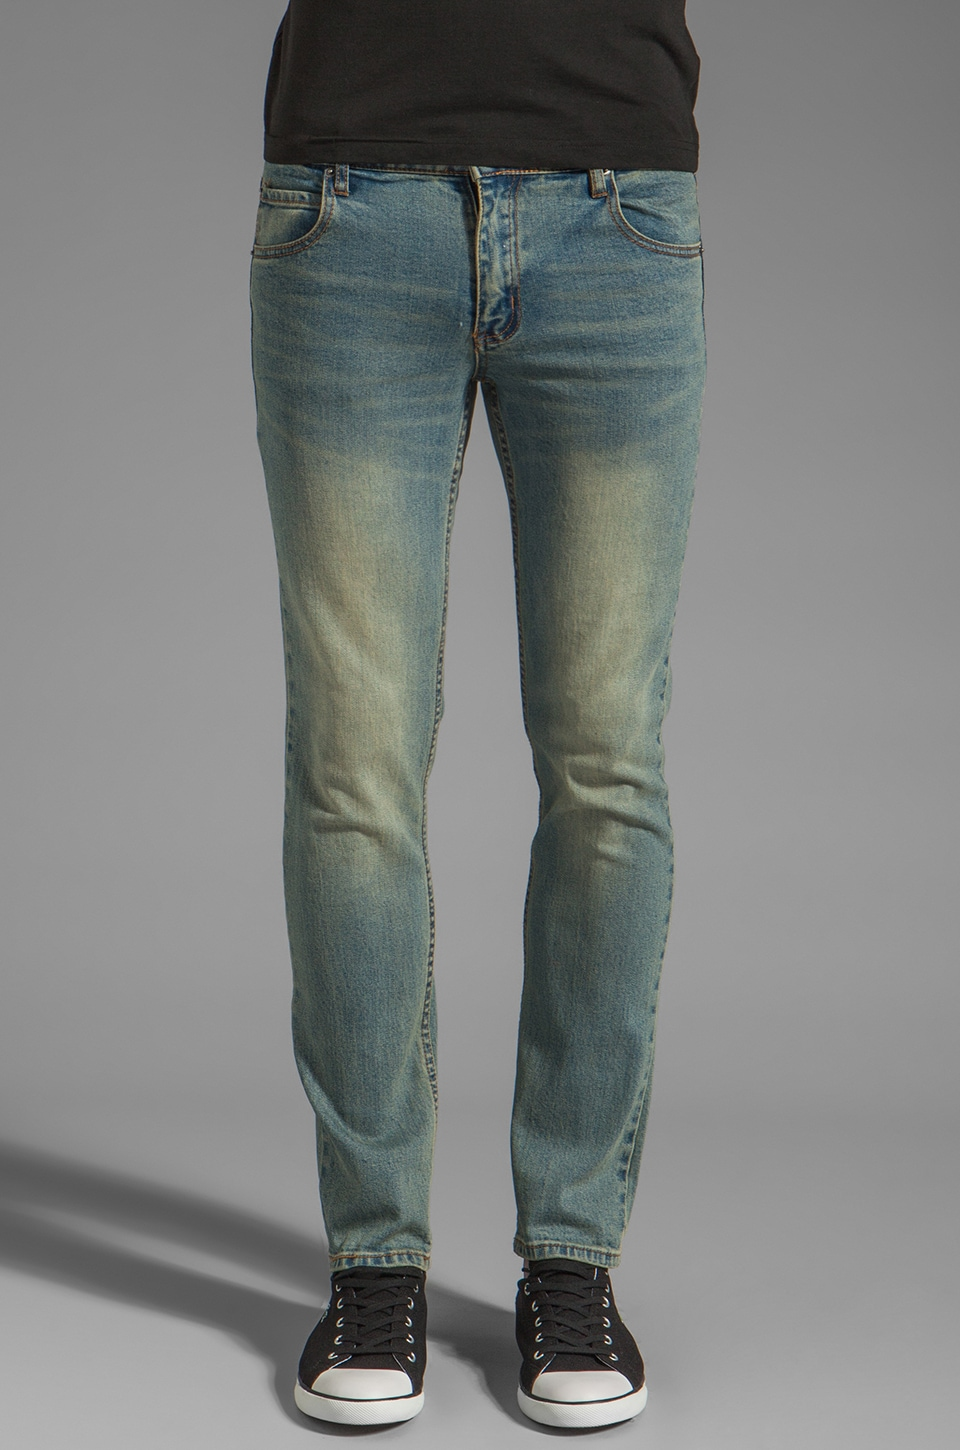 Cheap Monday Tight in Dirt Blue